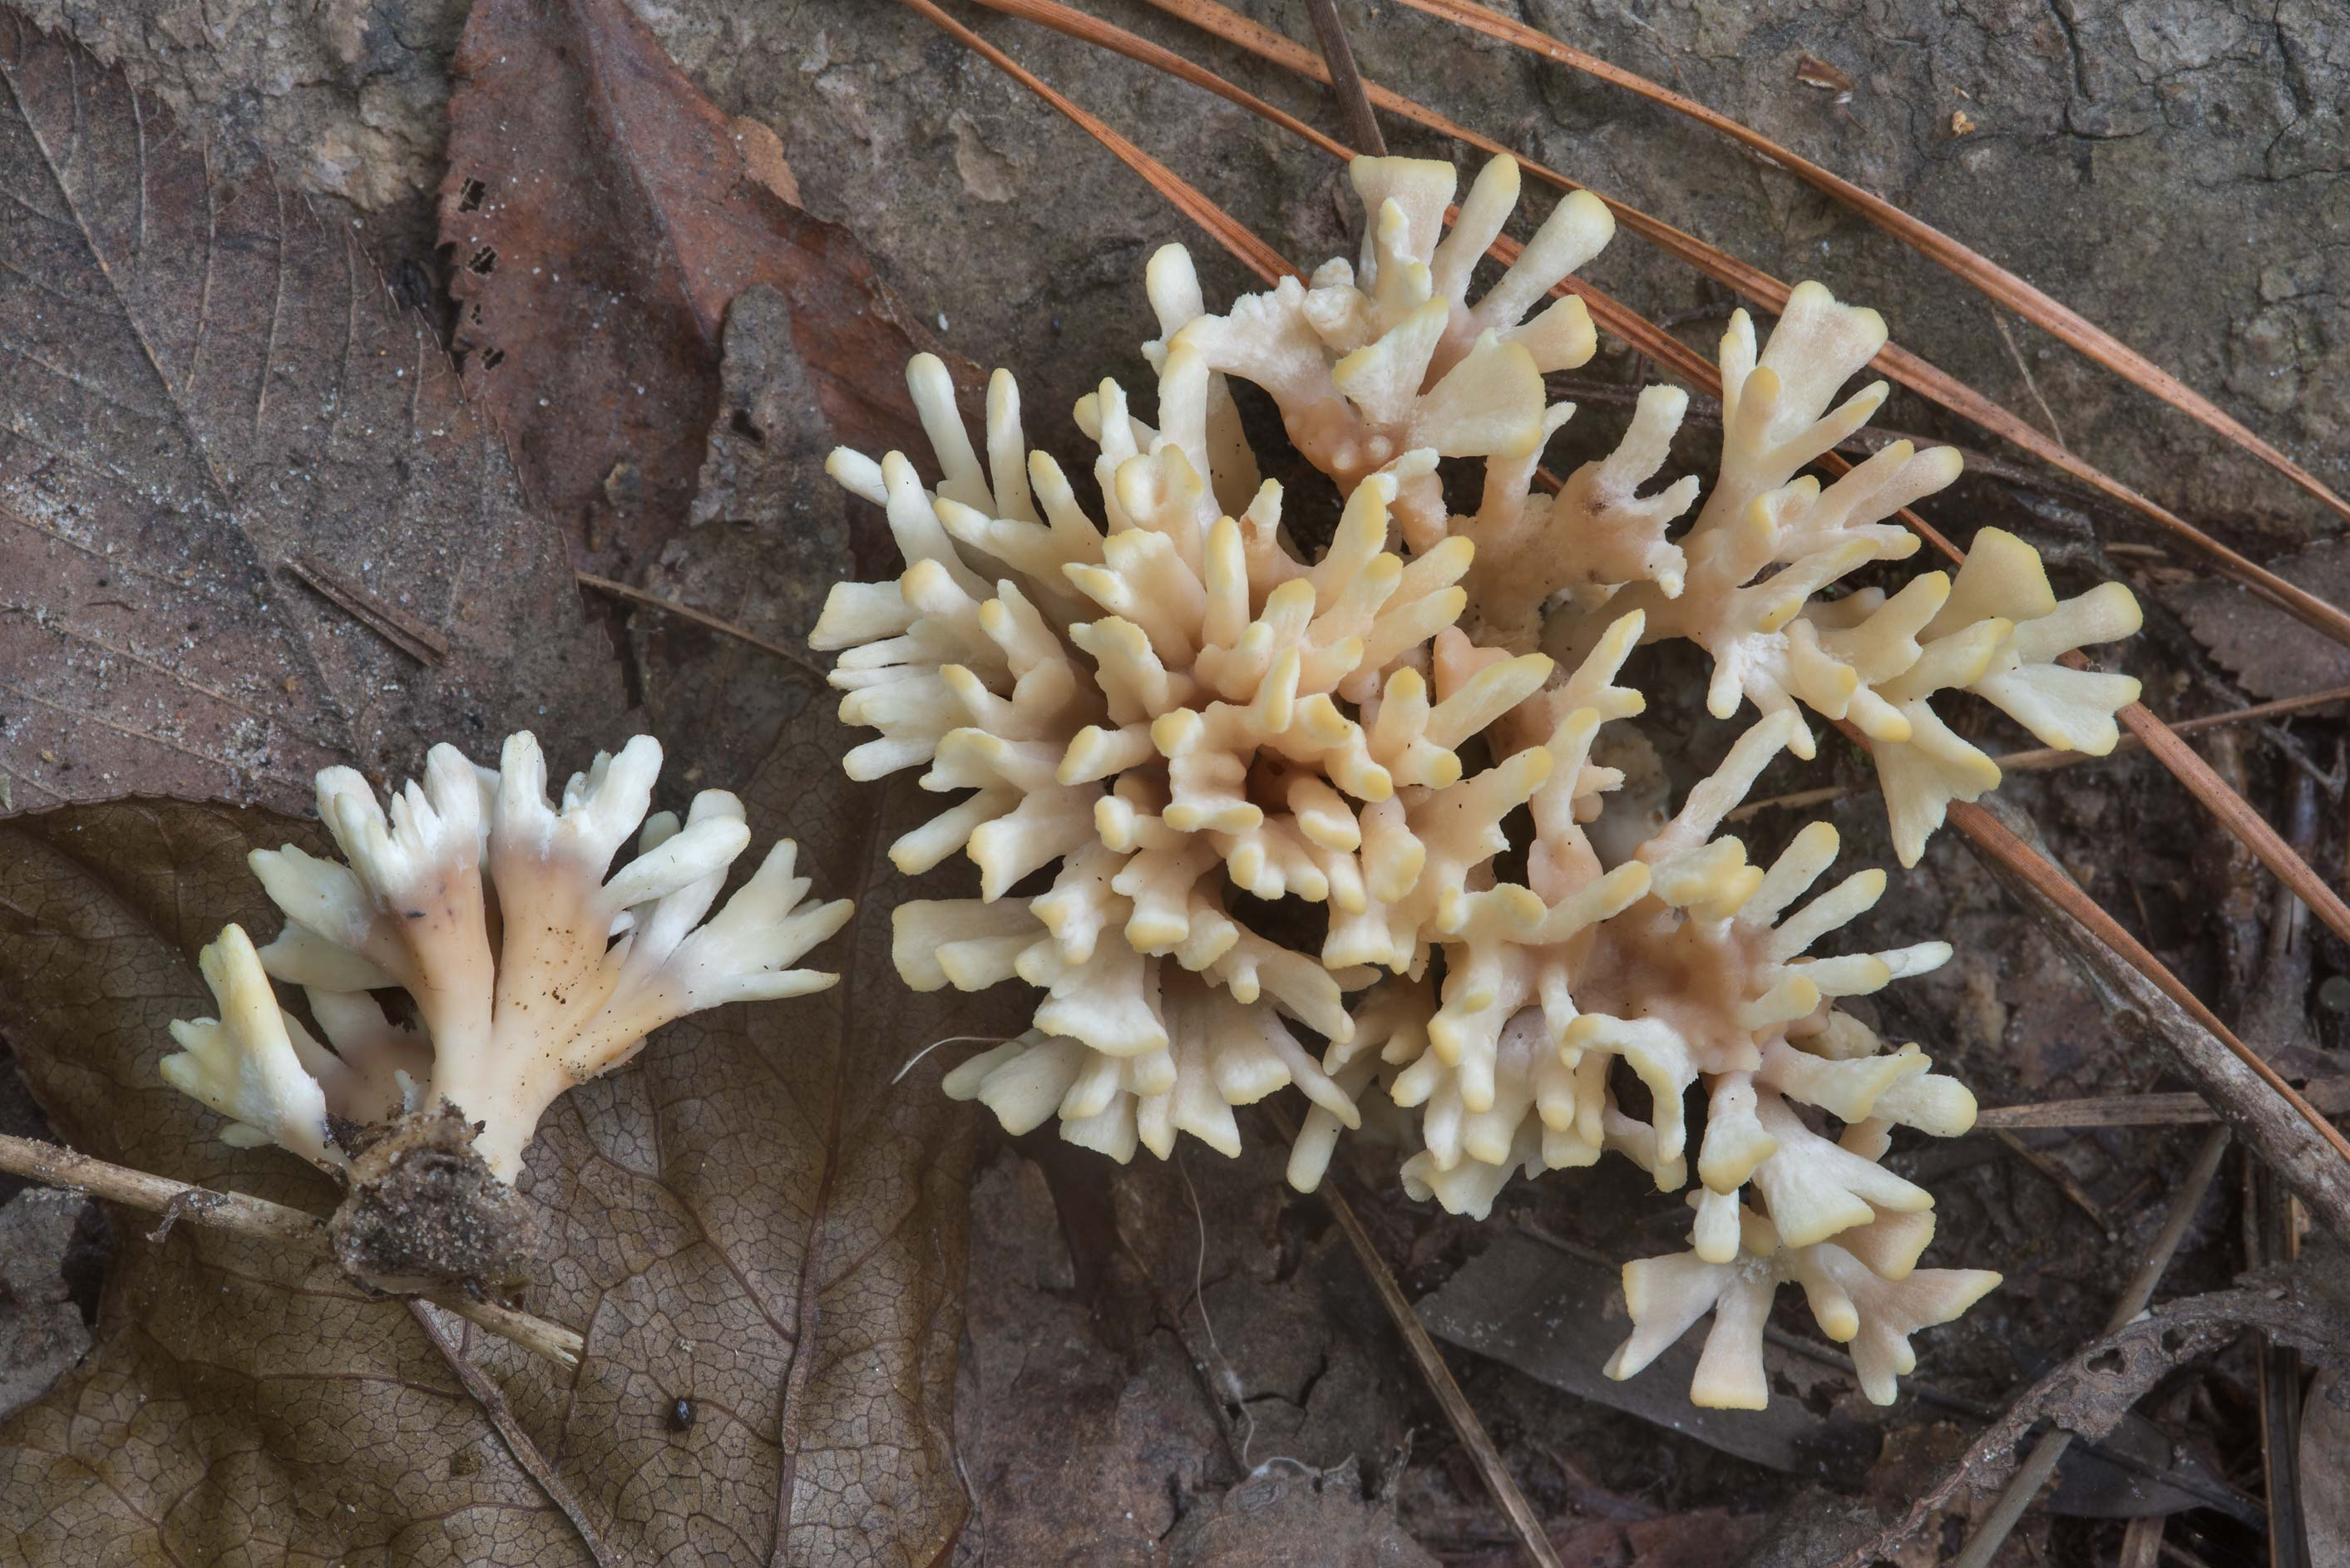 Upper view of false coral fungus (Tremellodendron...Forest, near Huntsville. Texas